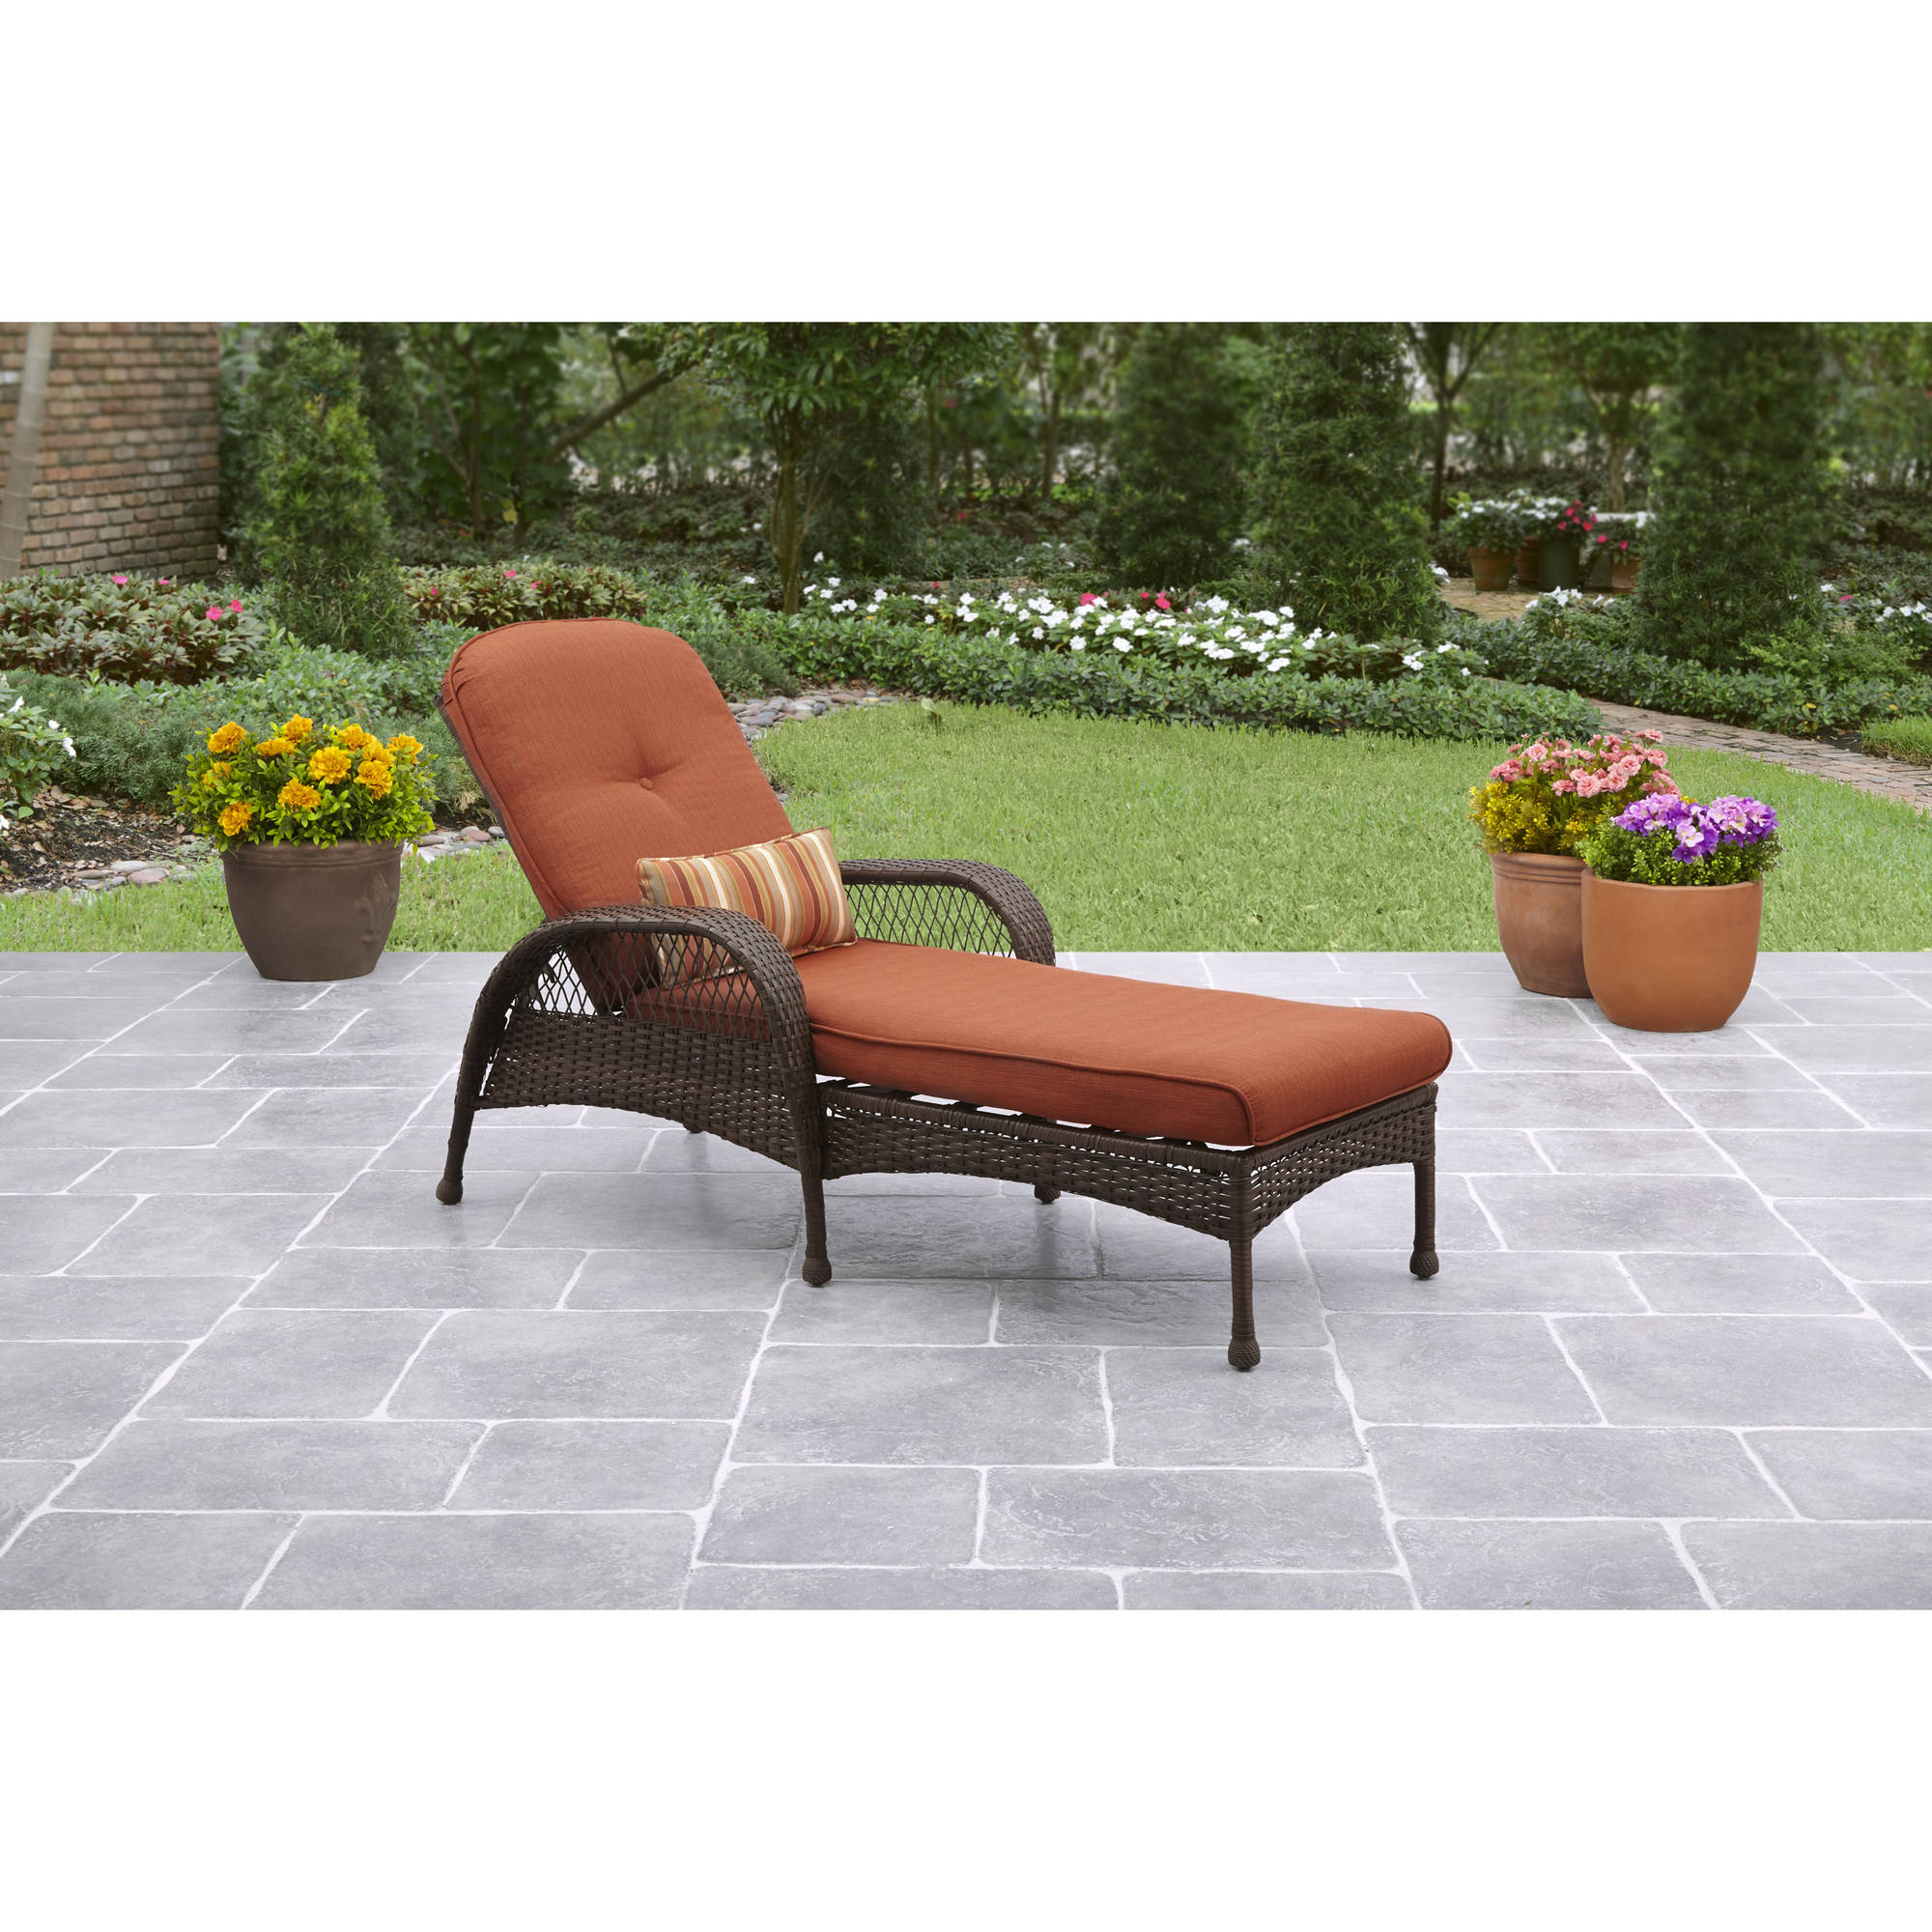 Furniture Chaise Better Homes Gardens Azalea Ridge Outdoor Chaise Lounge